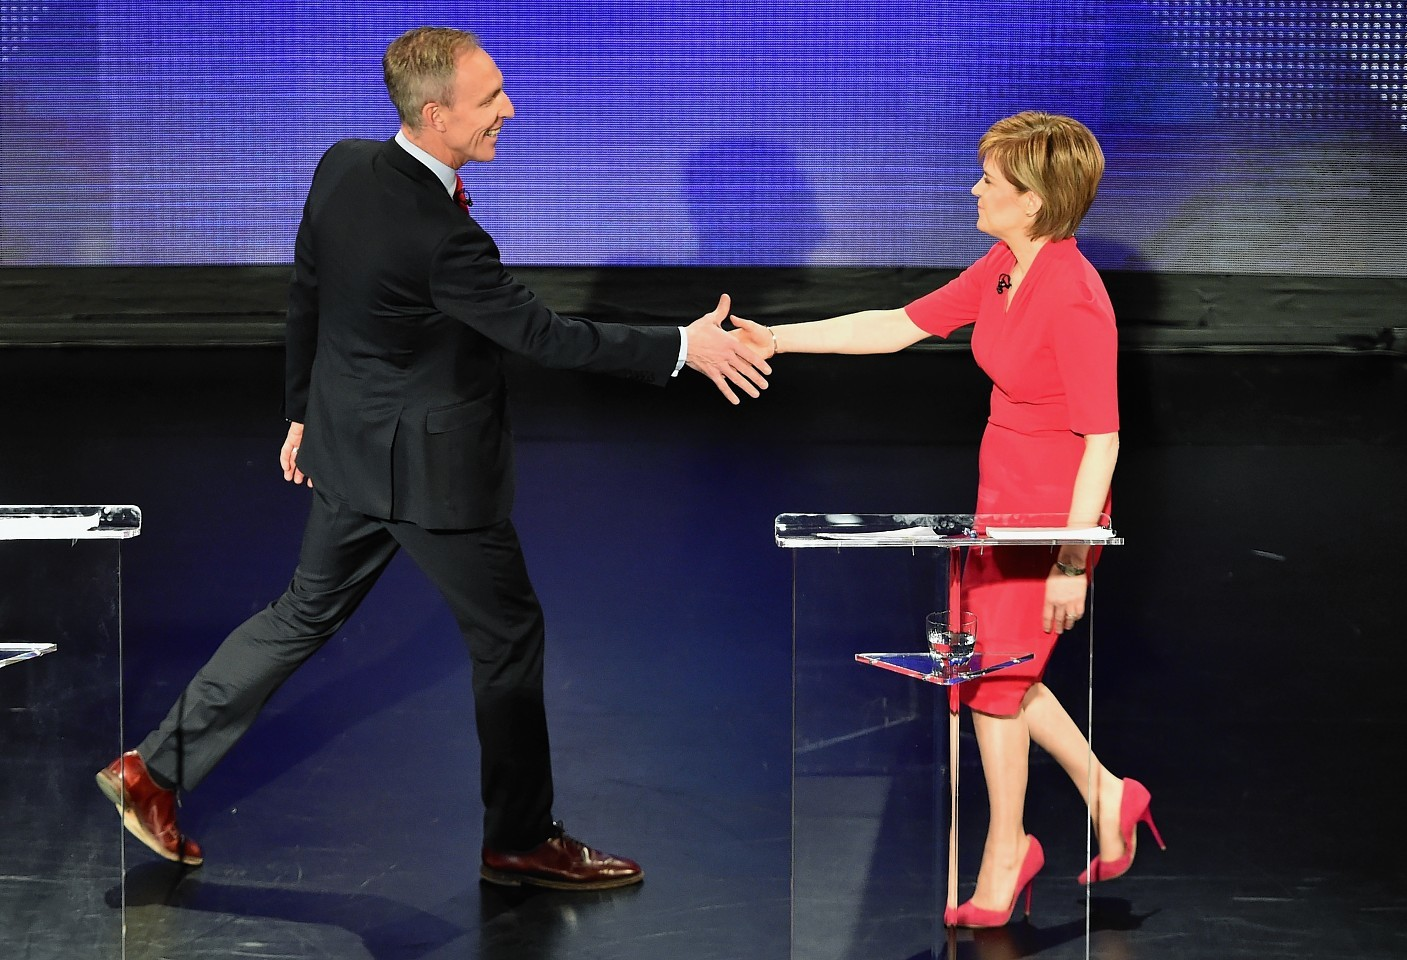 Scotland Debates with Jim Murphy and Nicola Sturgeon